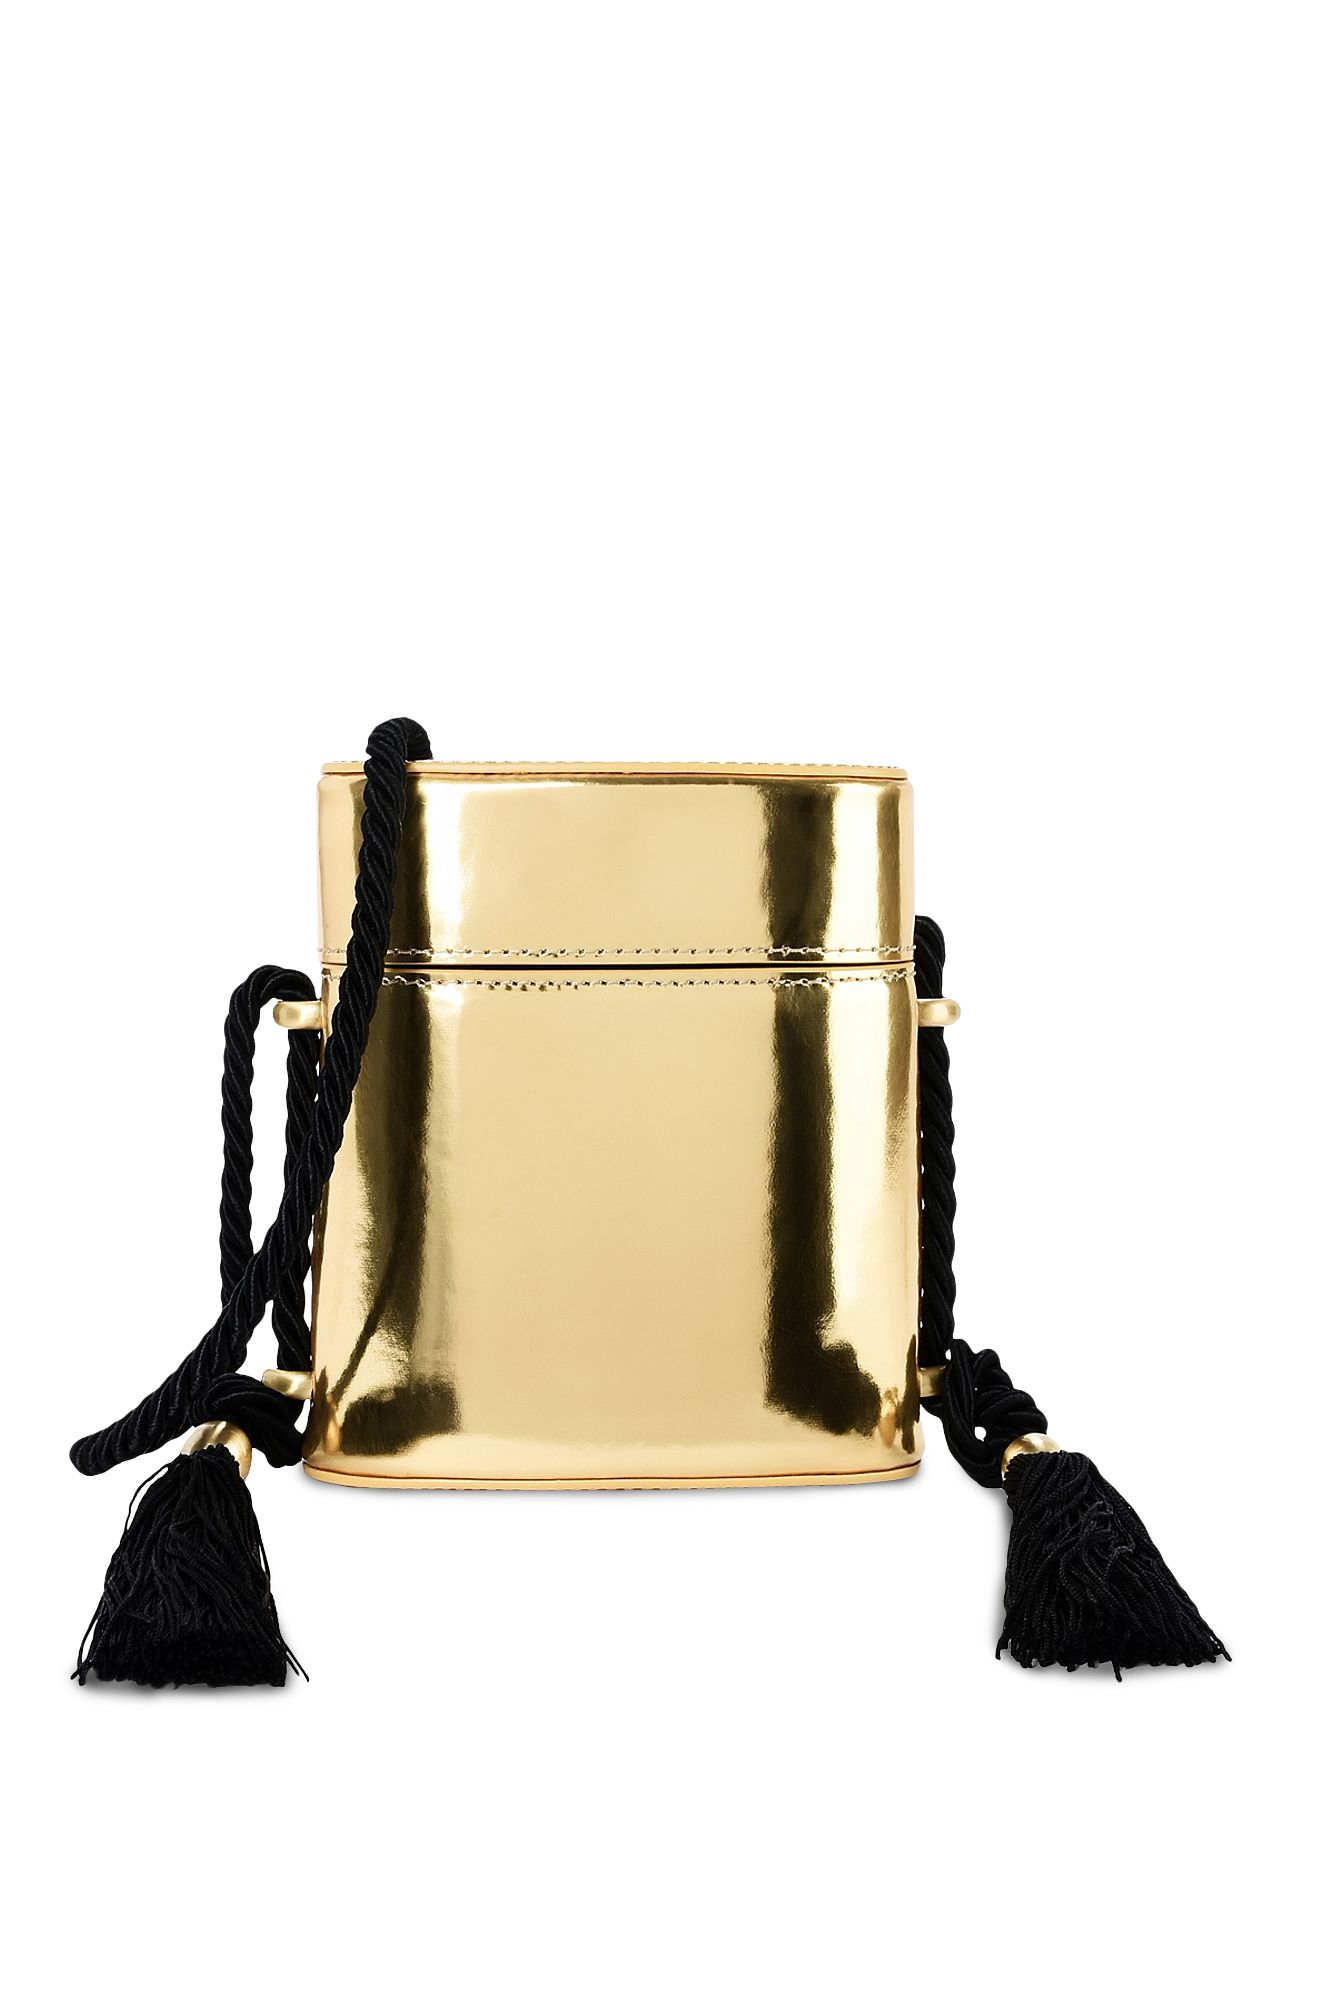 Shiny gold Mini bag